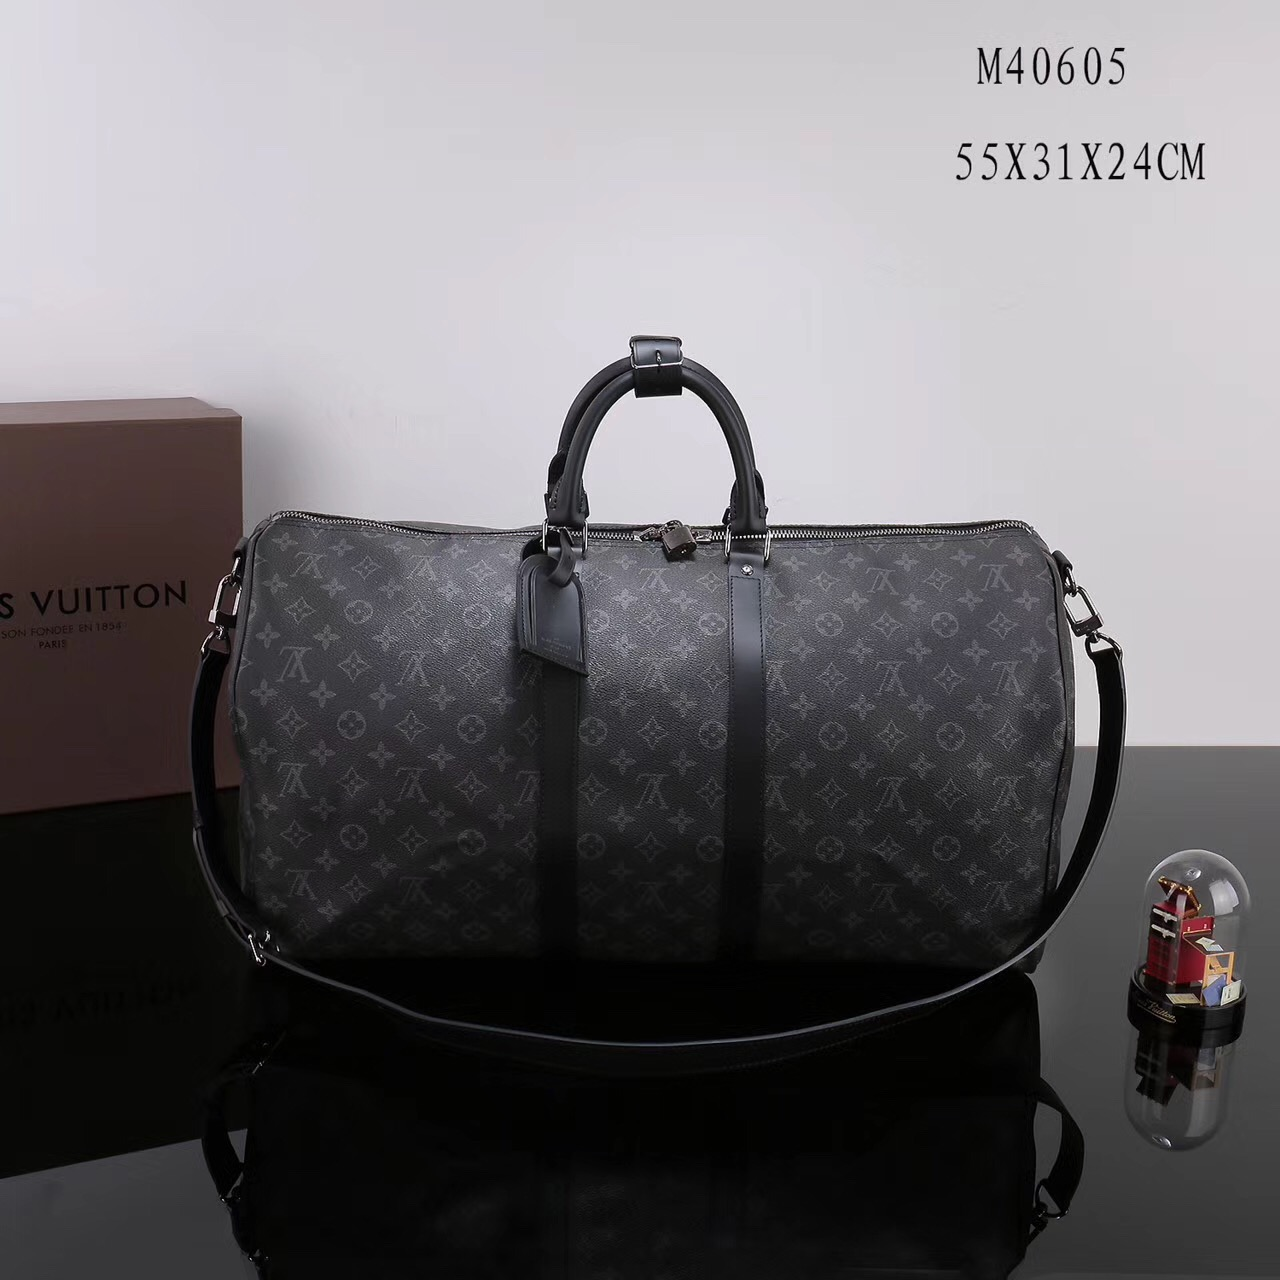 e2337d211335 Men LV Louis Vuitton M40605 Keepall 55 Travelling Handbags Monogram bags  Gray ...